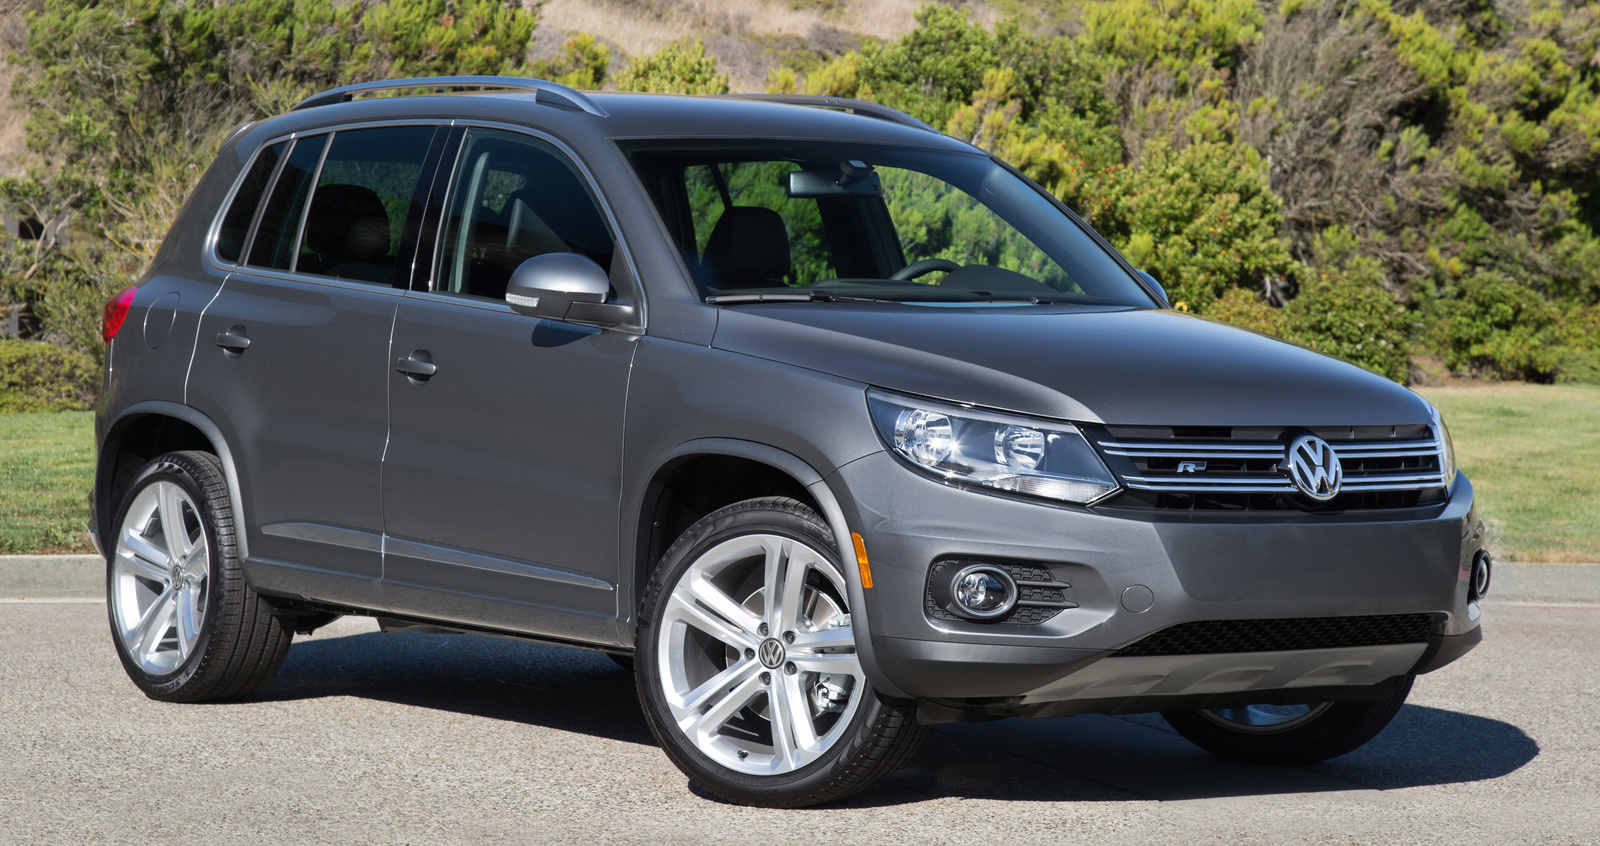 new 2015 2016 volkswagen tiguan for sale washington dc cargurus. Black Bedroom Furniture Sets. Home Design Ideas